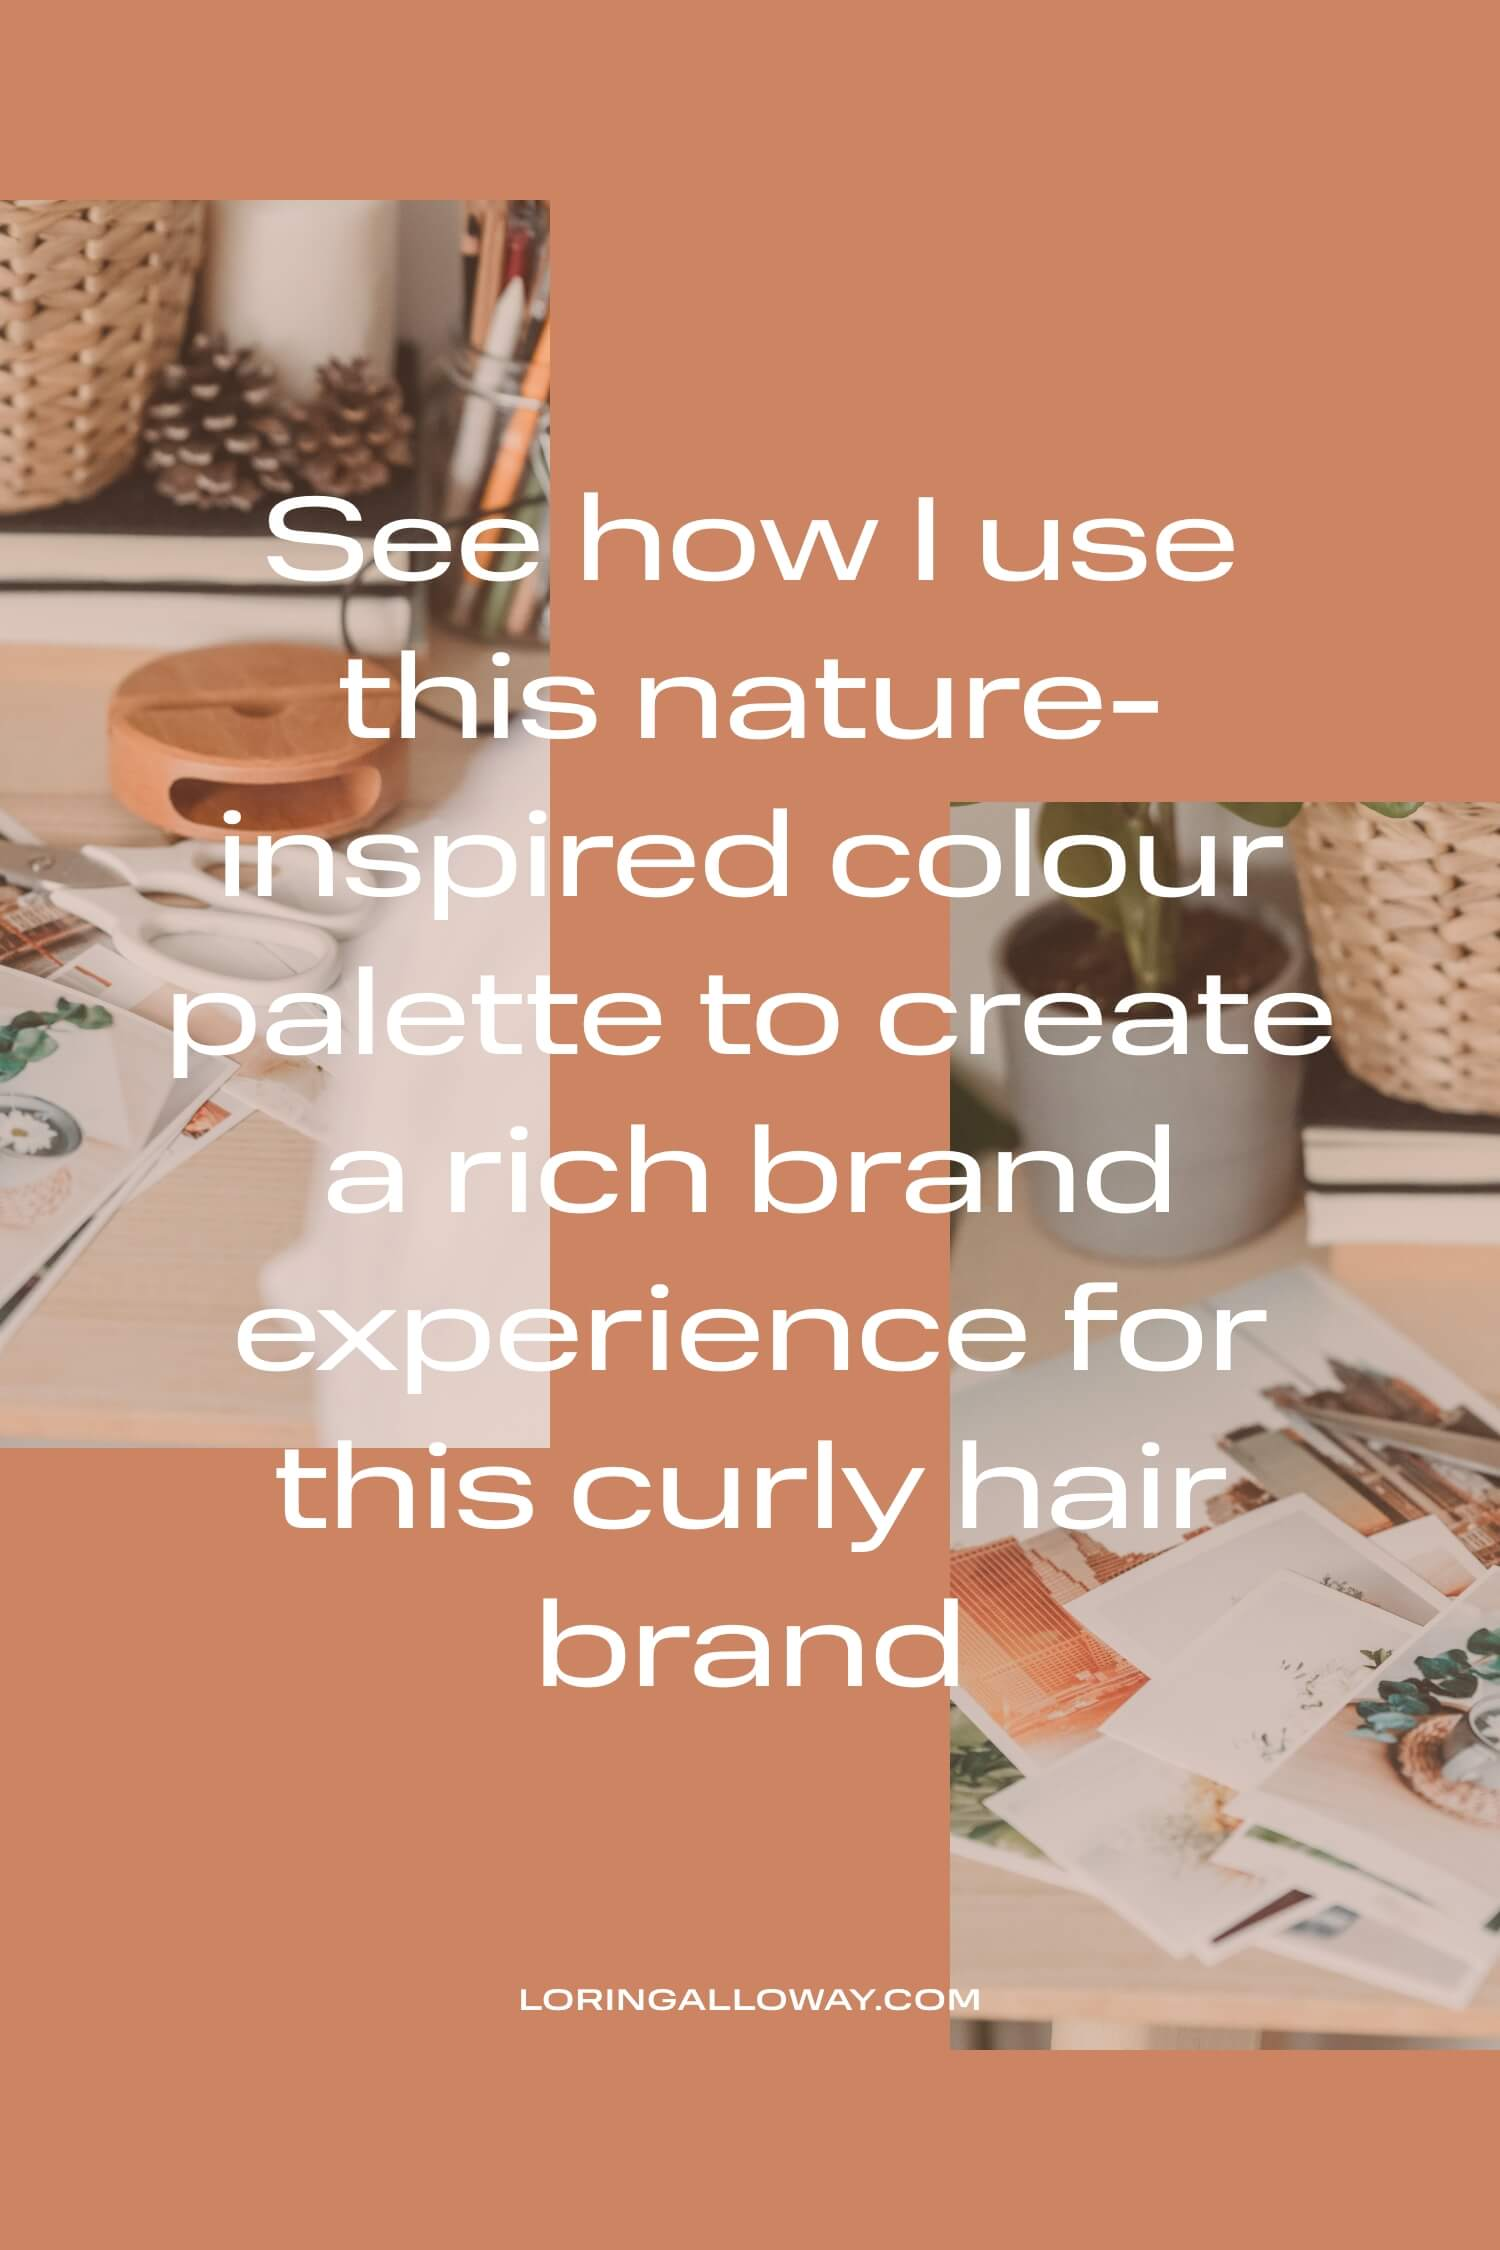 Download these colour palettes for your small creative business DIY branding project